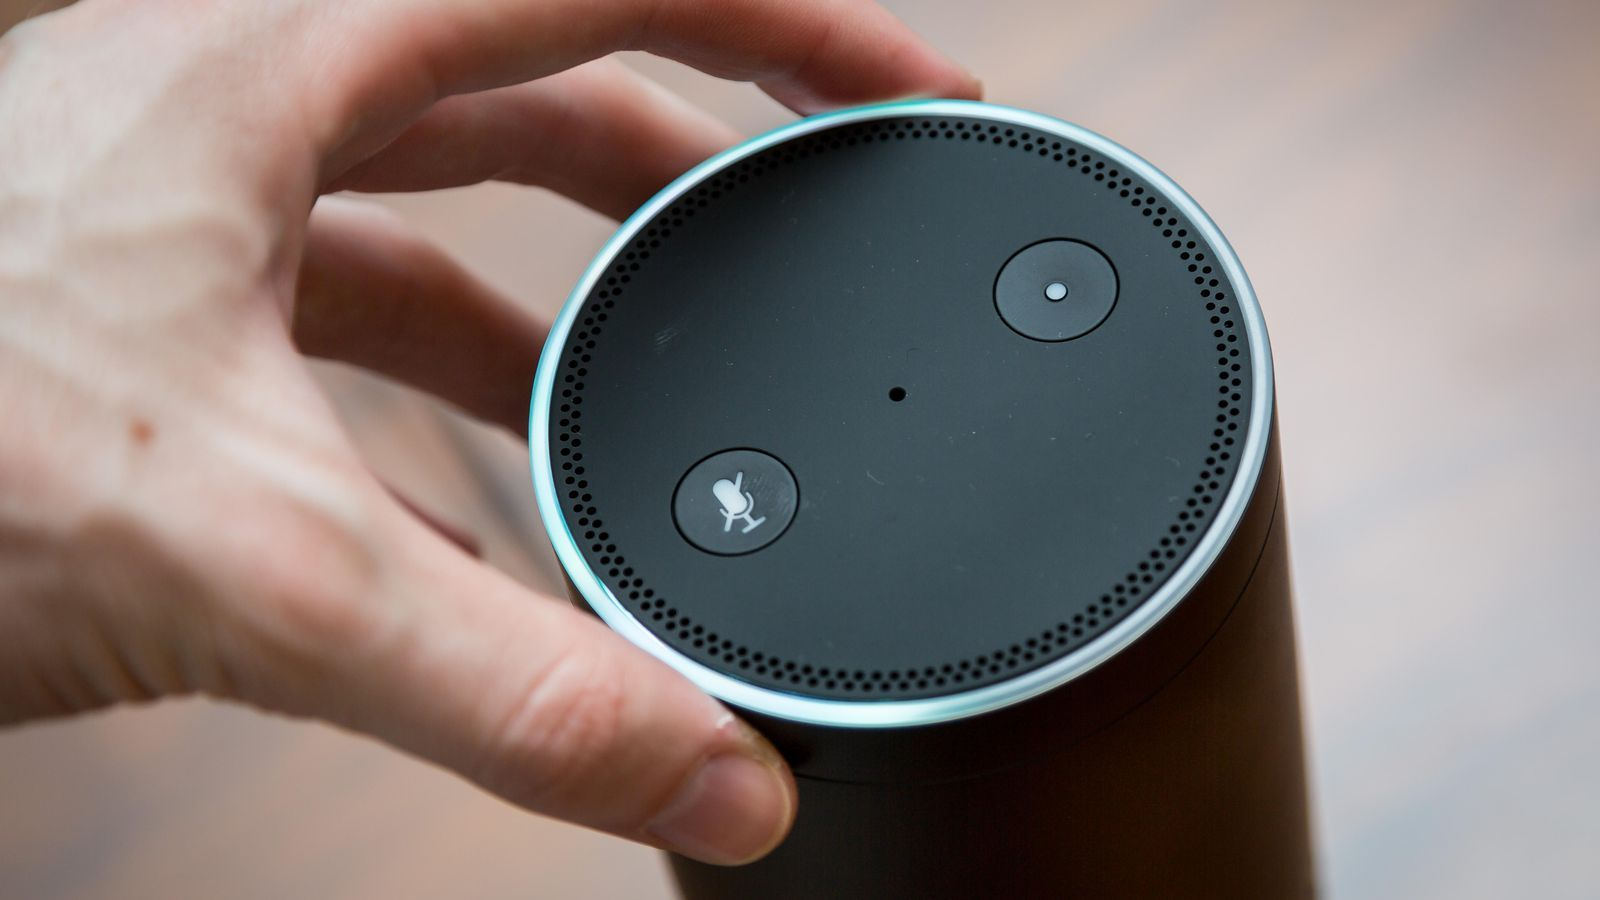 Alexa Routines now let you stream music on a schedule